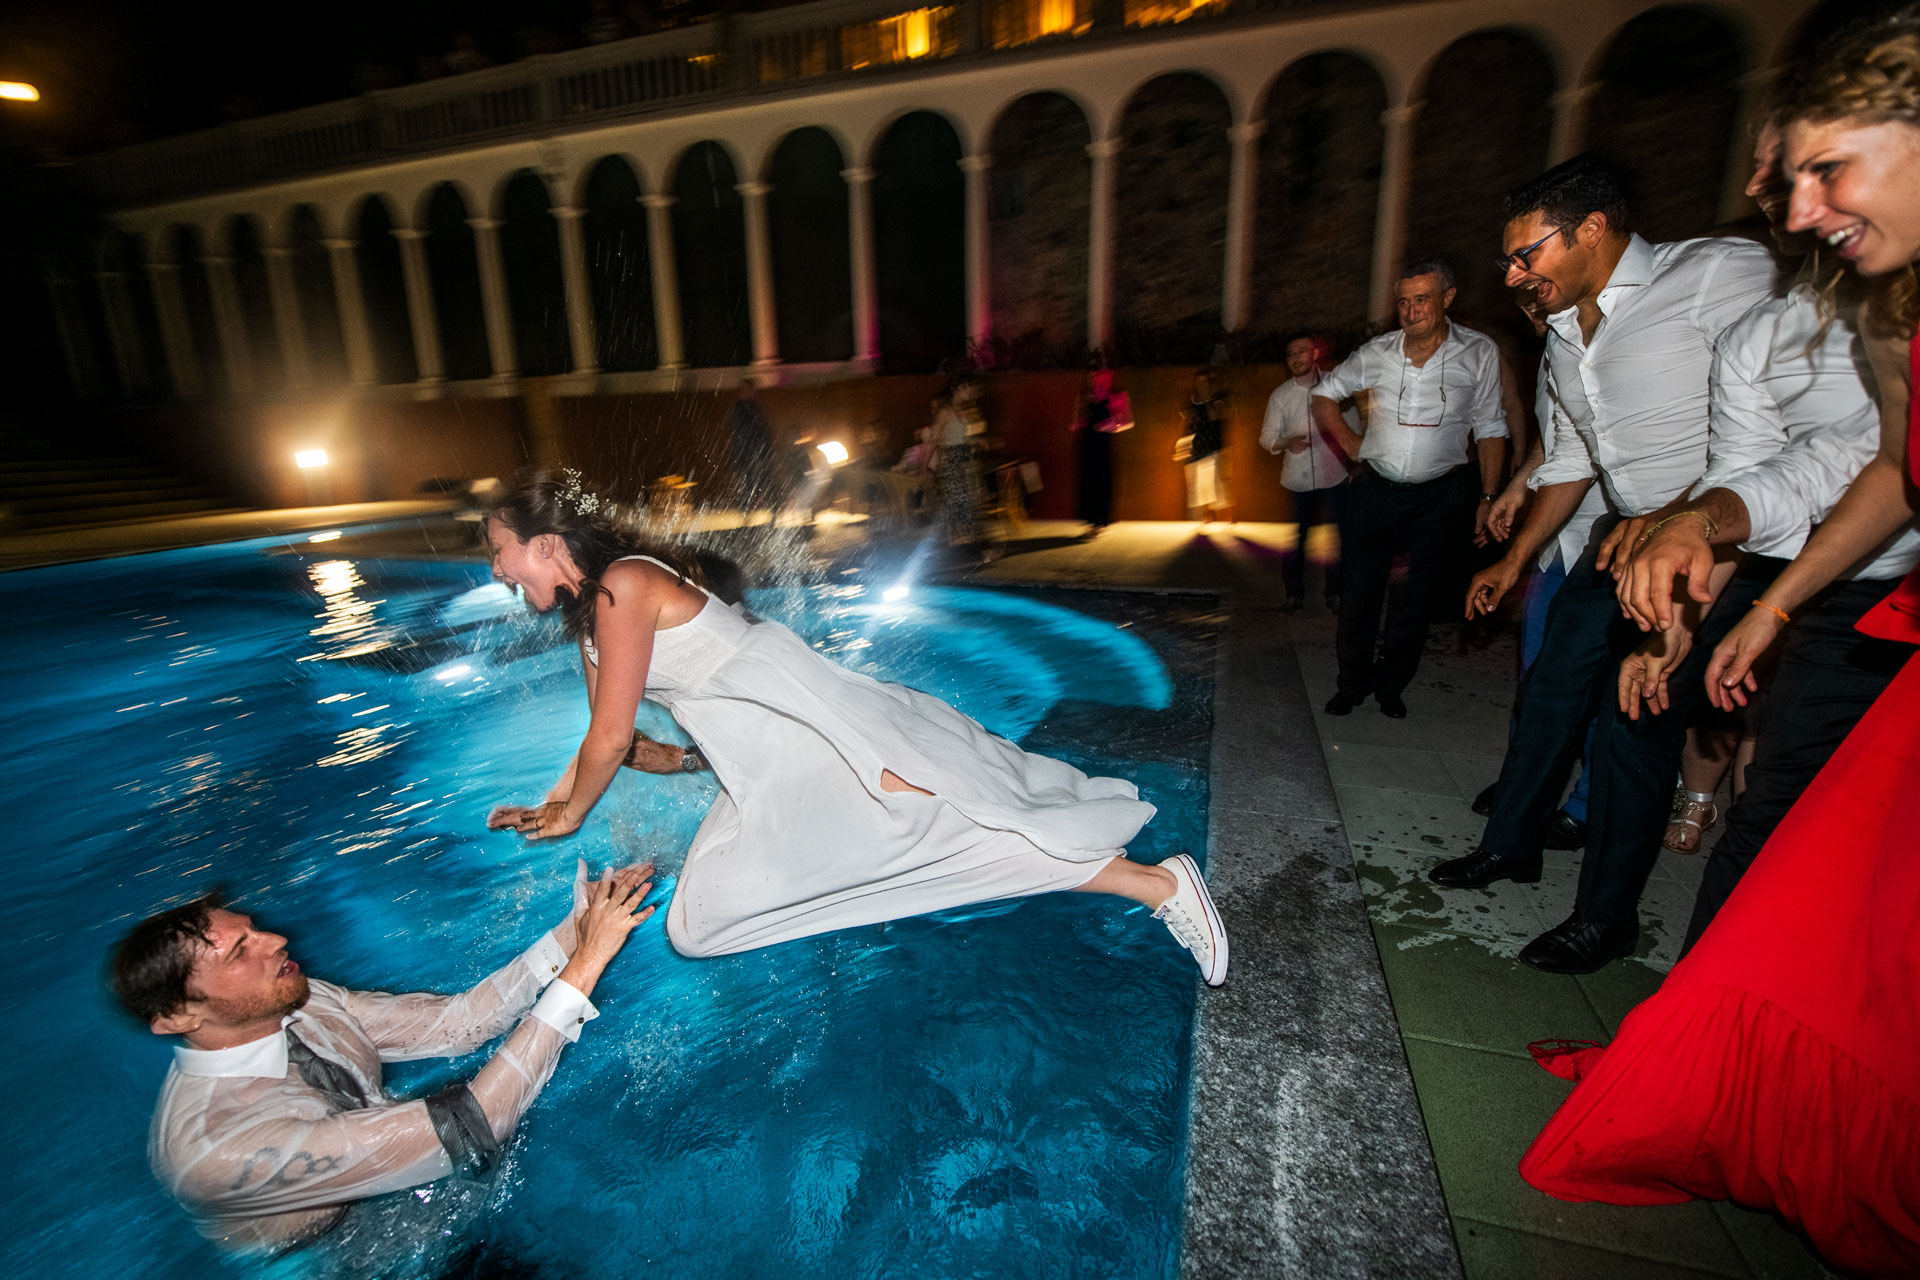 Photography of the moment of the bride's flight in the pool with the groom at the wedding reception